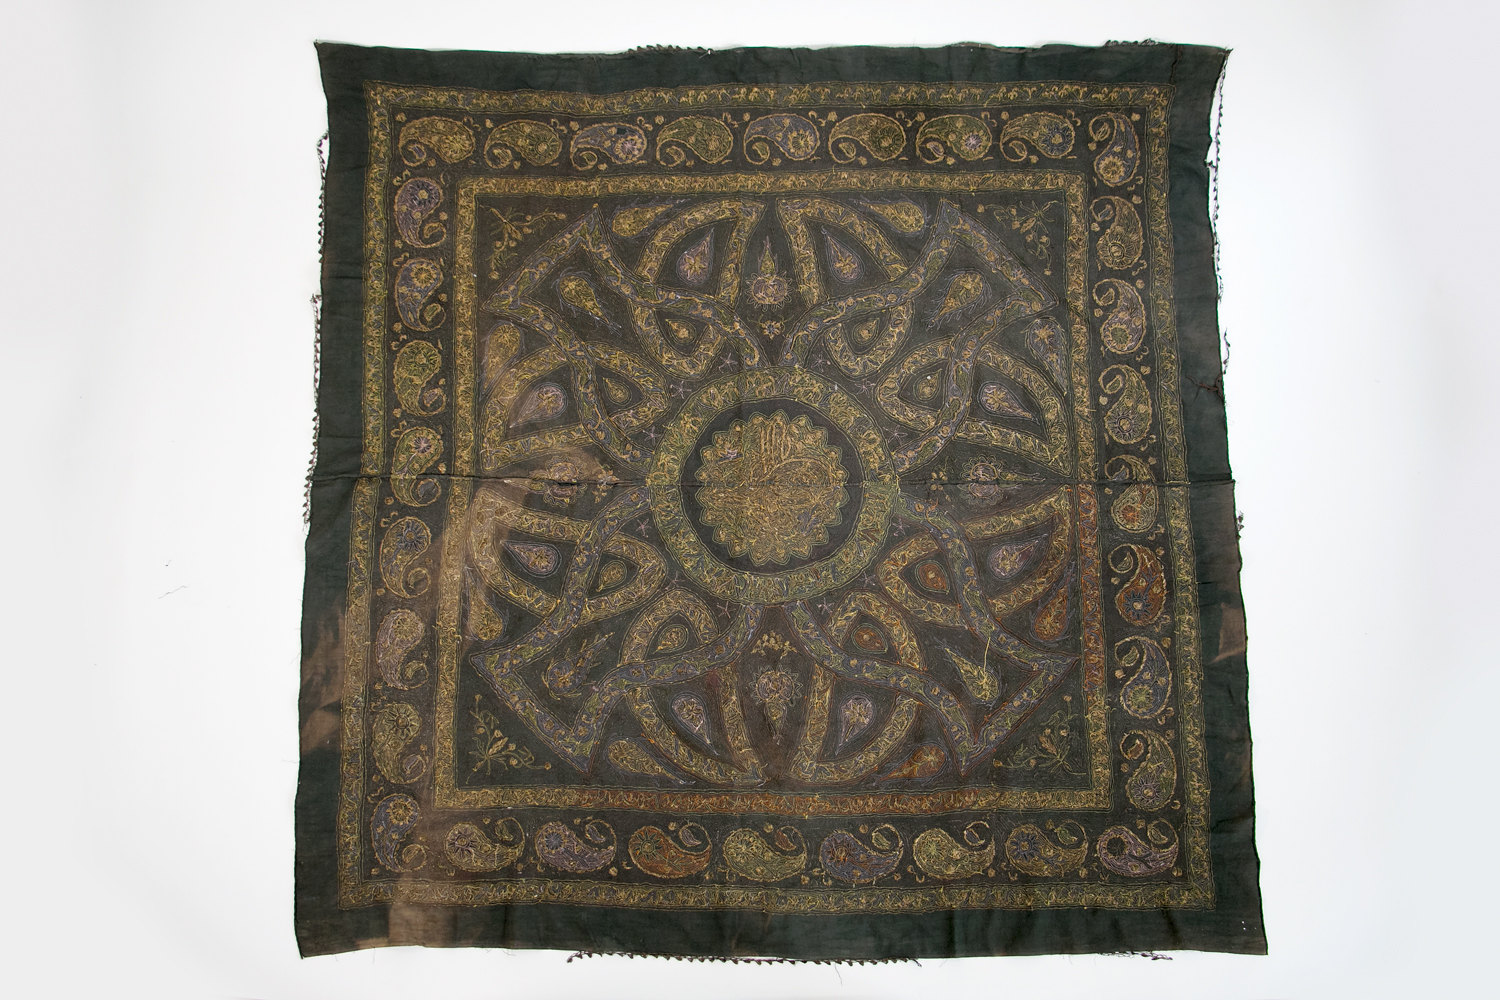 Antique 1920's Turkish Ottoman Paisley Linen Tablecloth w Real Brass Metal Embroidery - Rare // Gypsy, Hipster, Historical